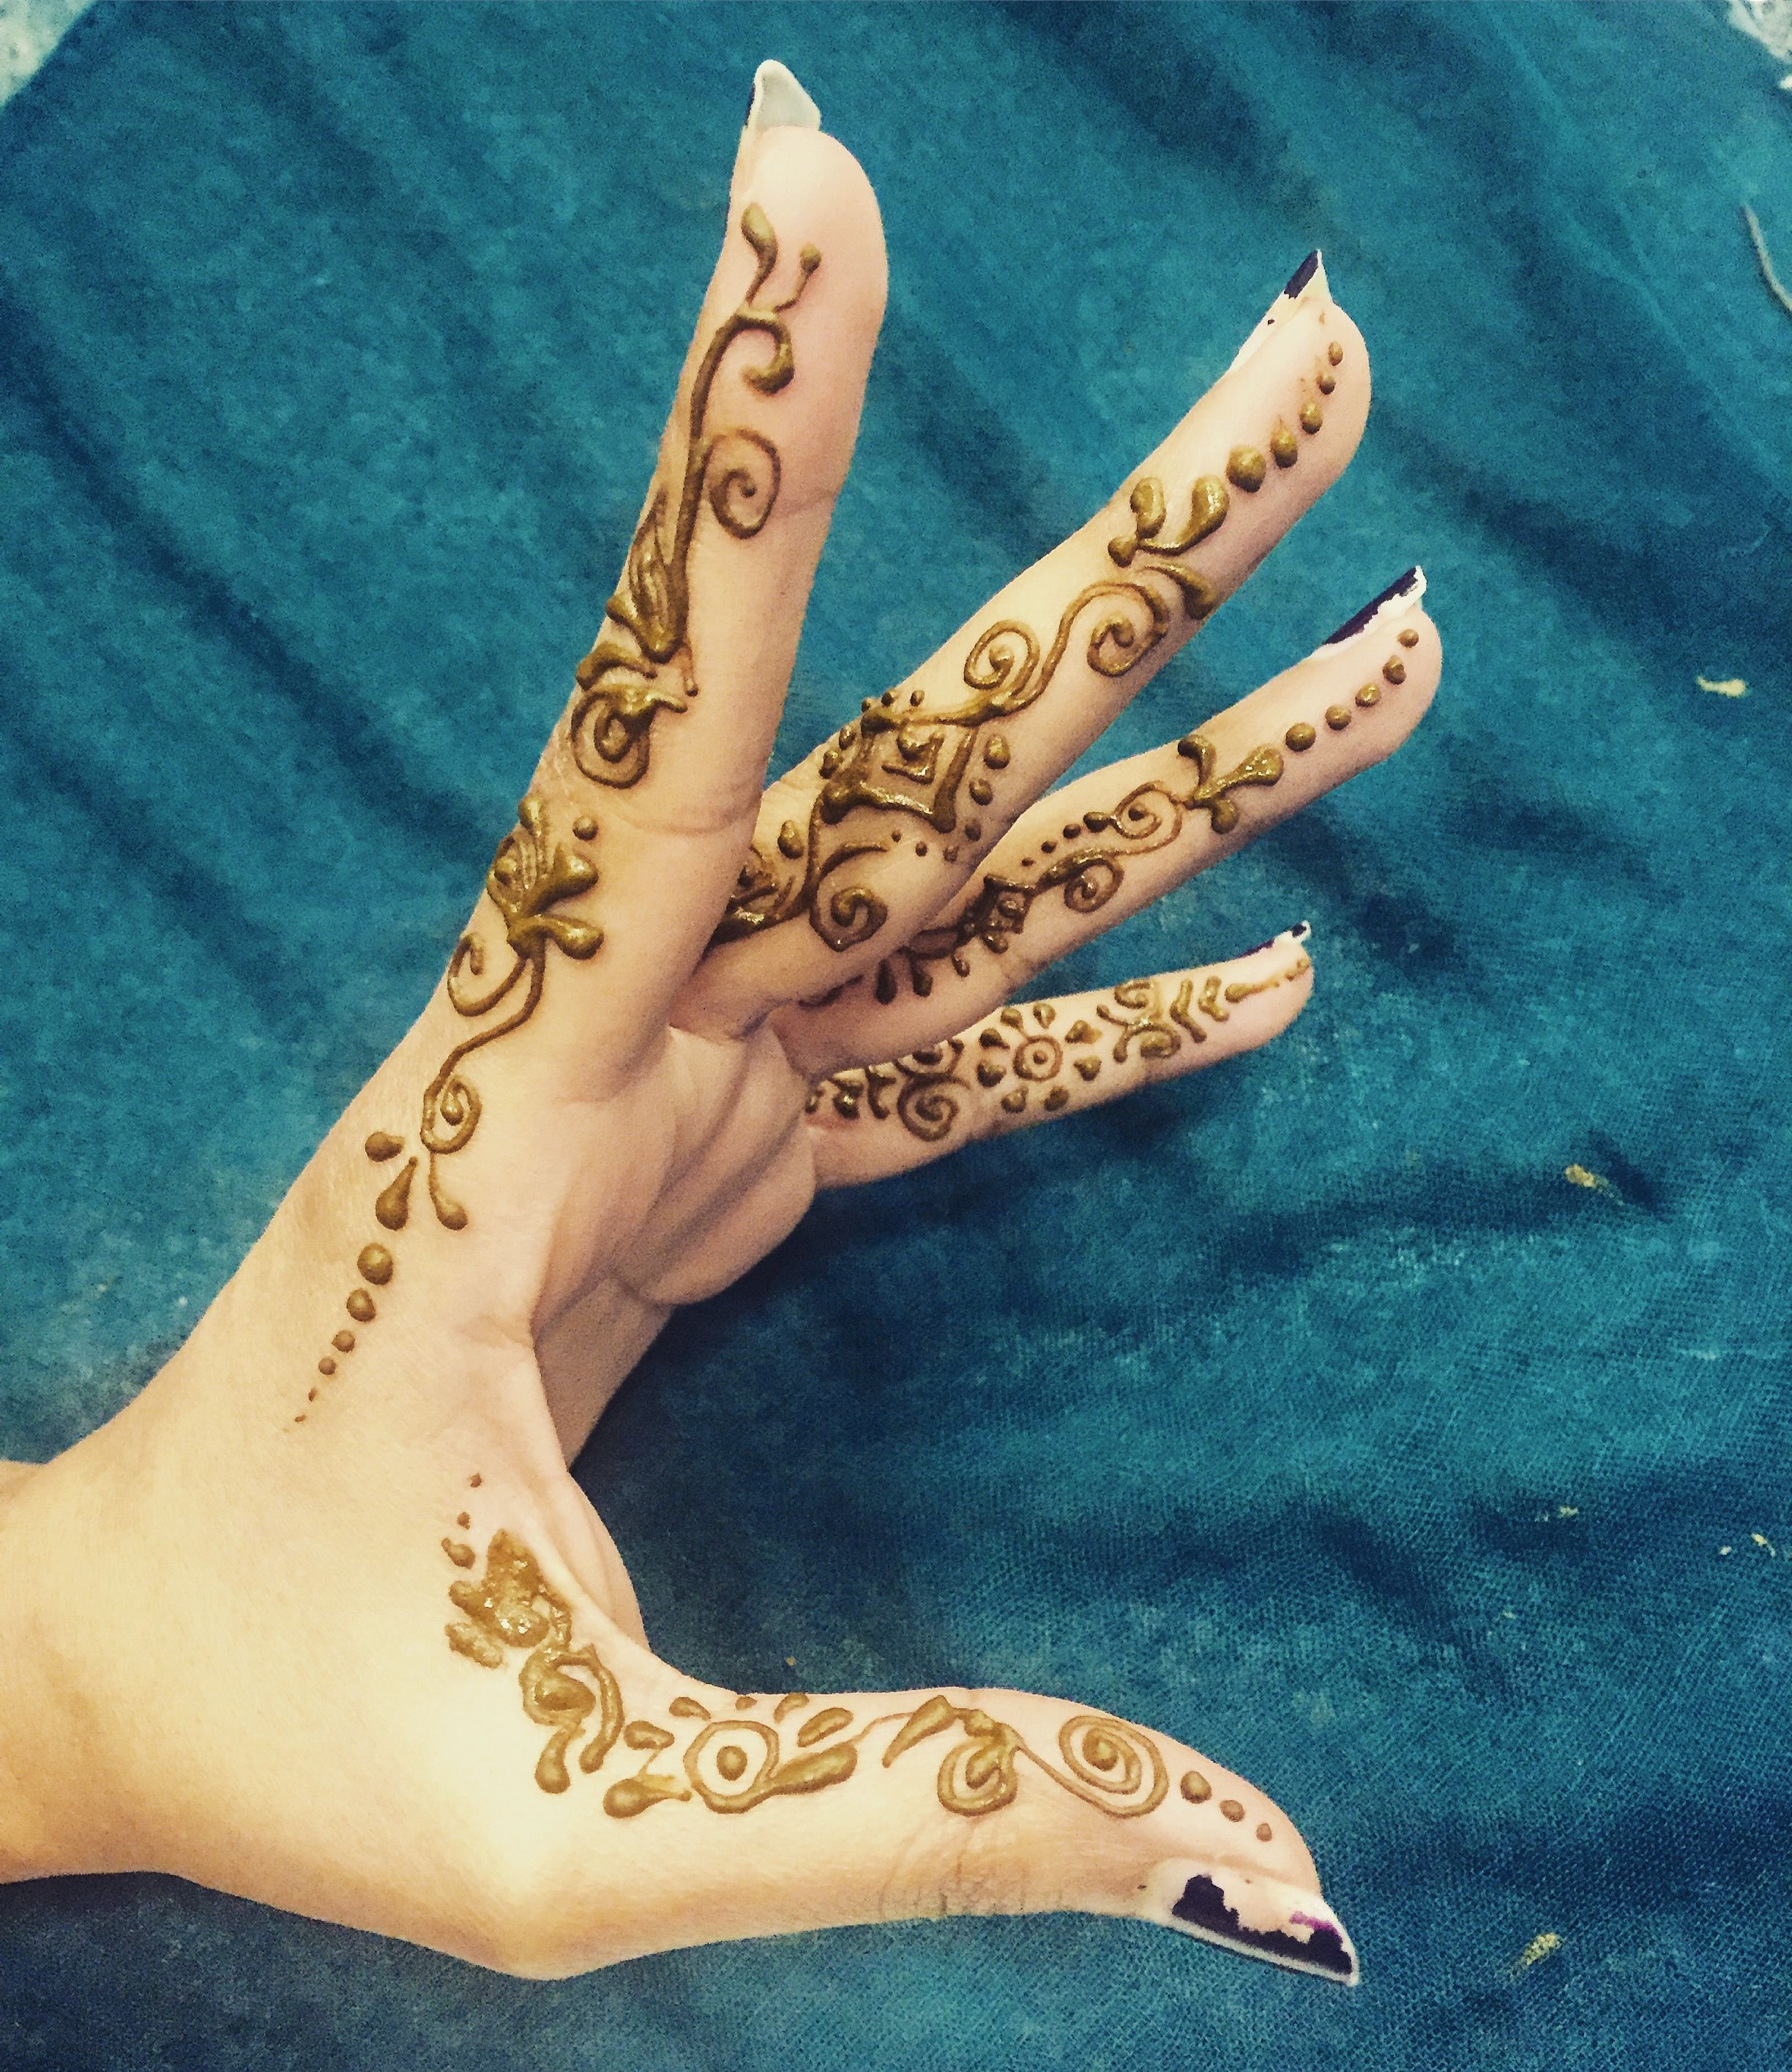 Henna Art As A Side Finger Design Absolutely Loved Doing This One Diy Henna Designs Diy Henna Henna Tattoo Designs